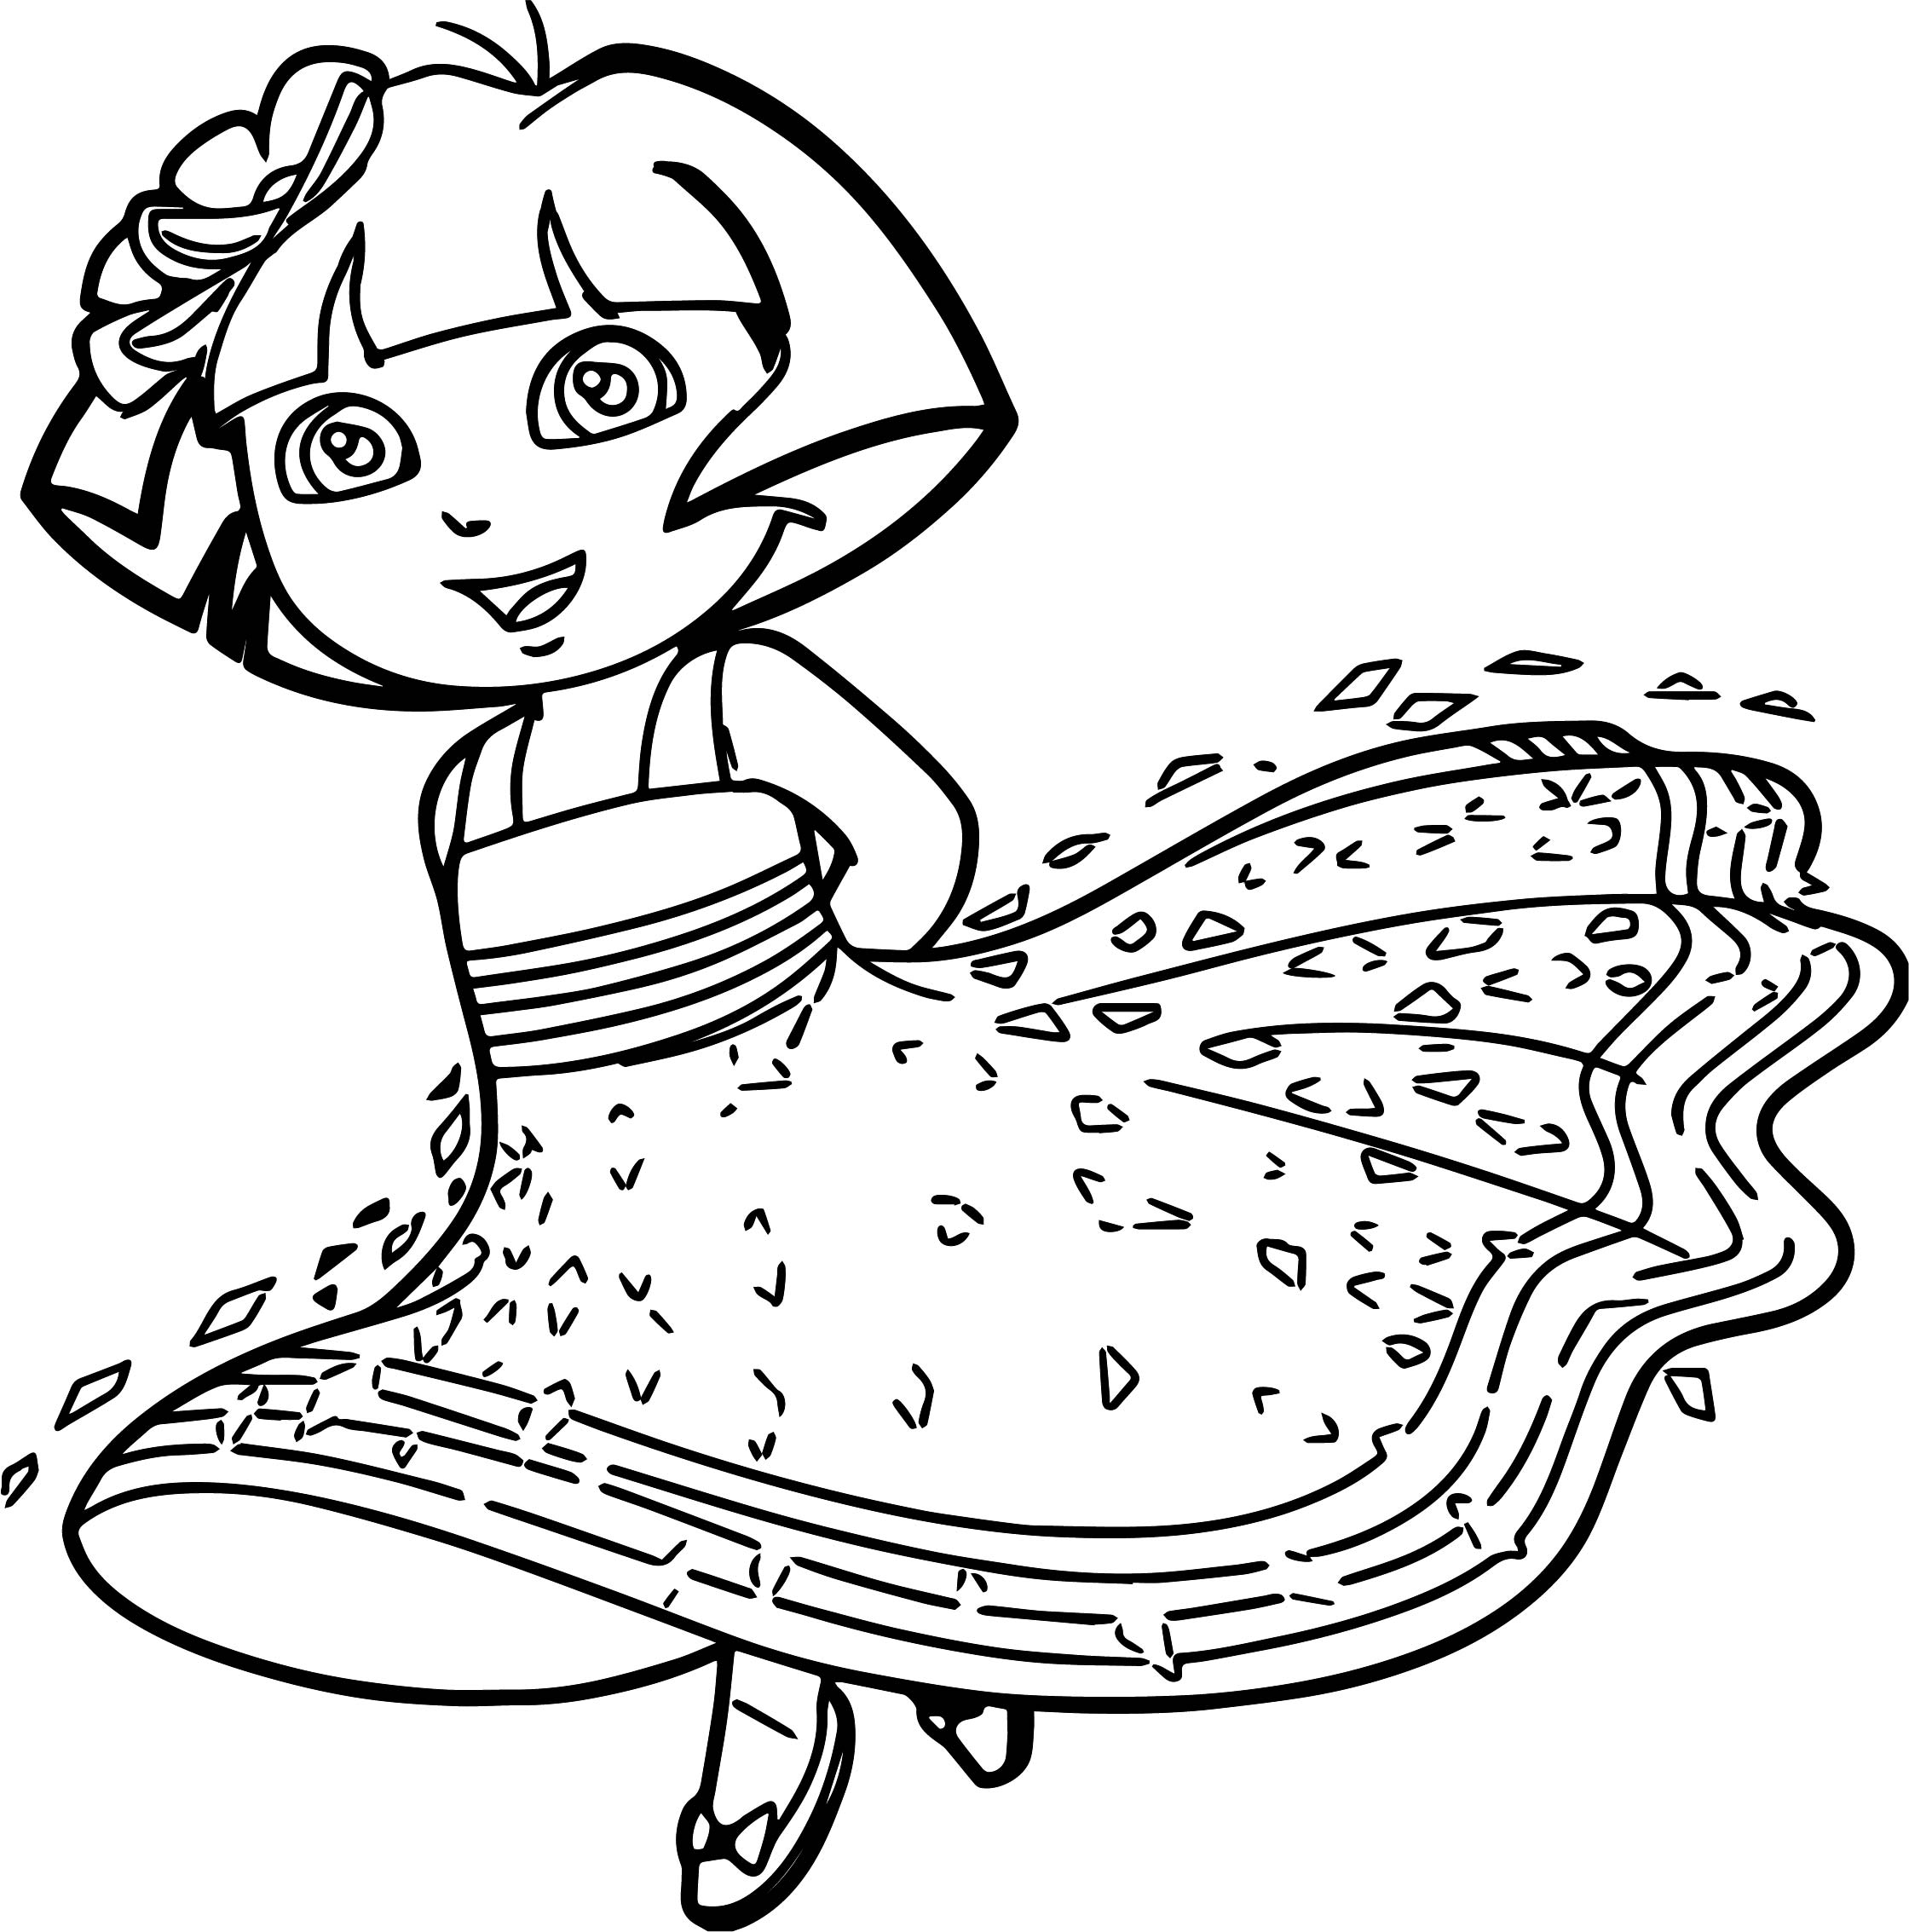 Dora princess coloring pages ~ Princess Dora Cartoon Coloring Page | Wecoloringpage.com